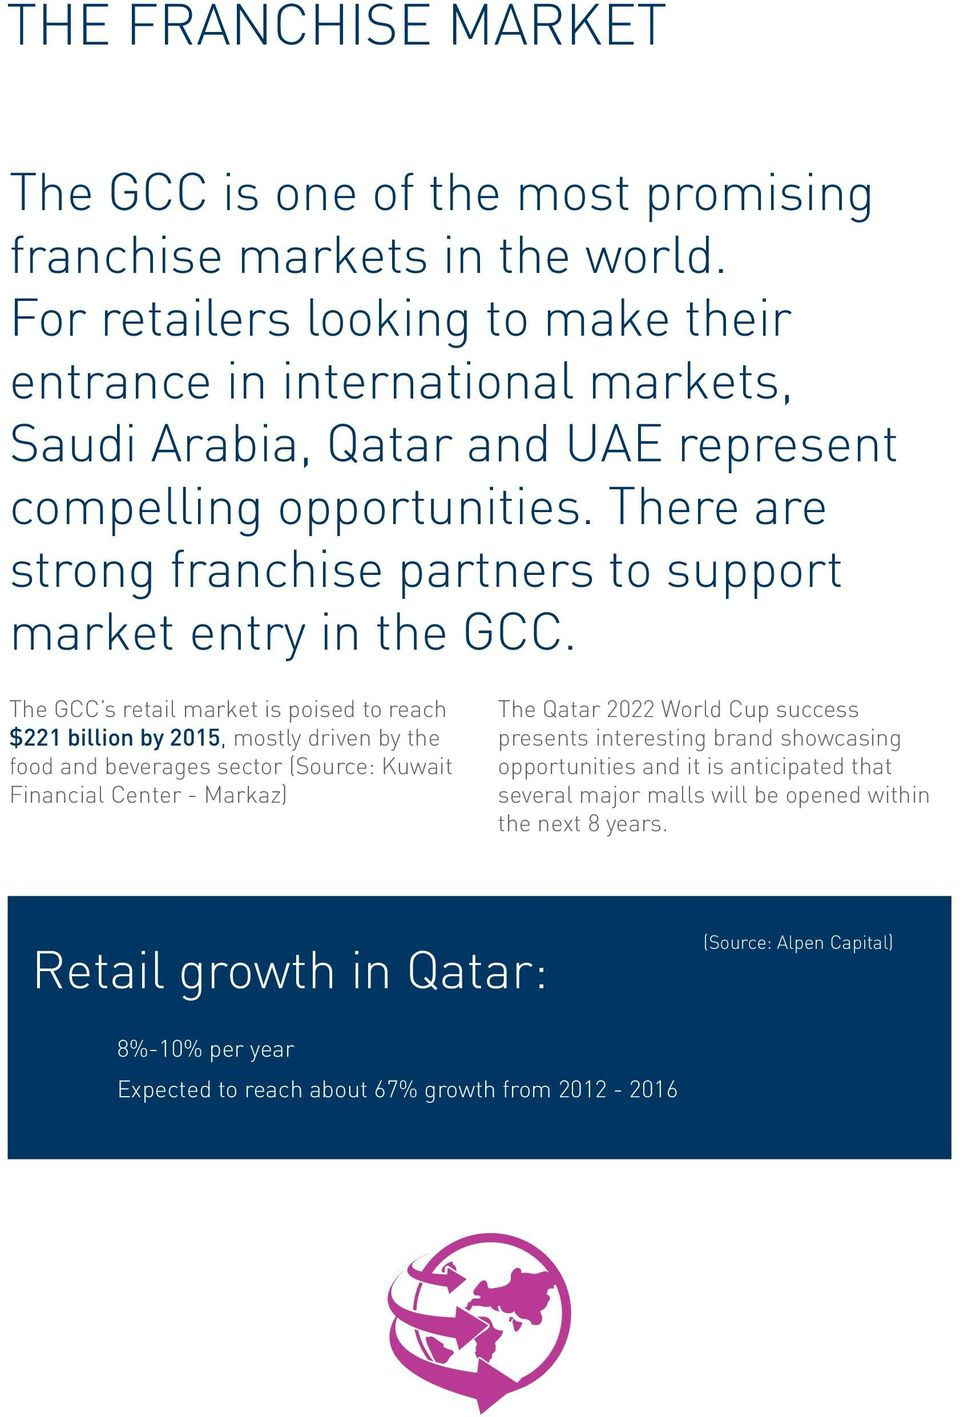 There are strong franchise partners to support market entry in the GCC.